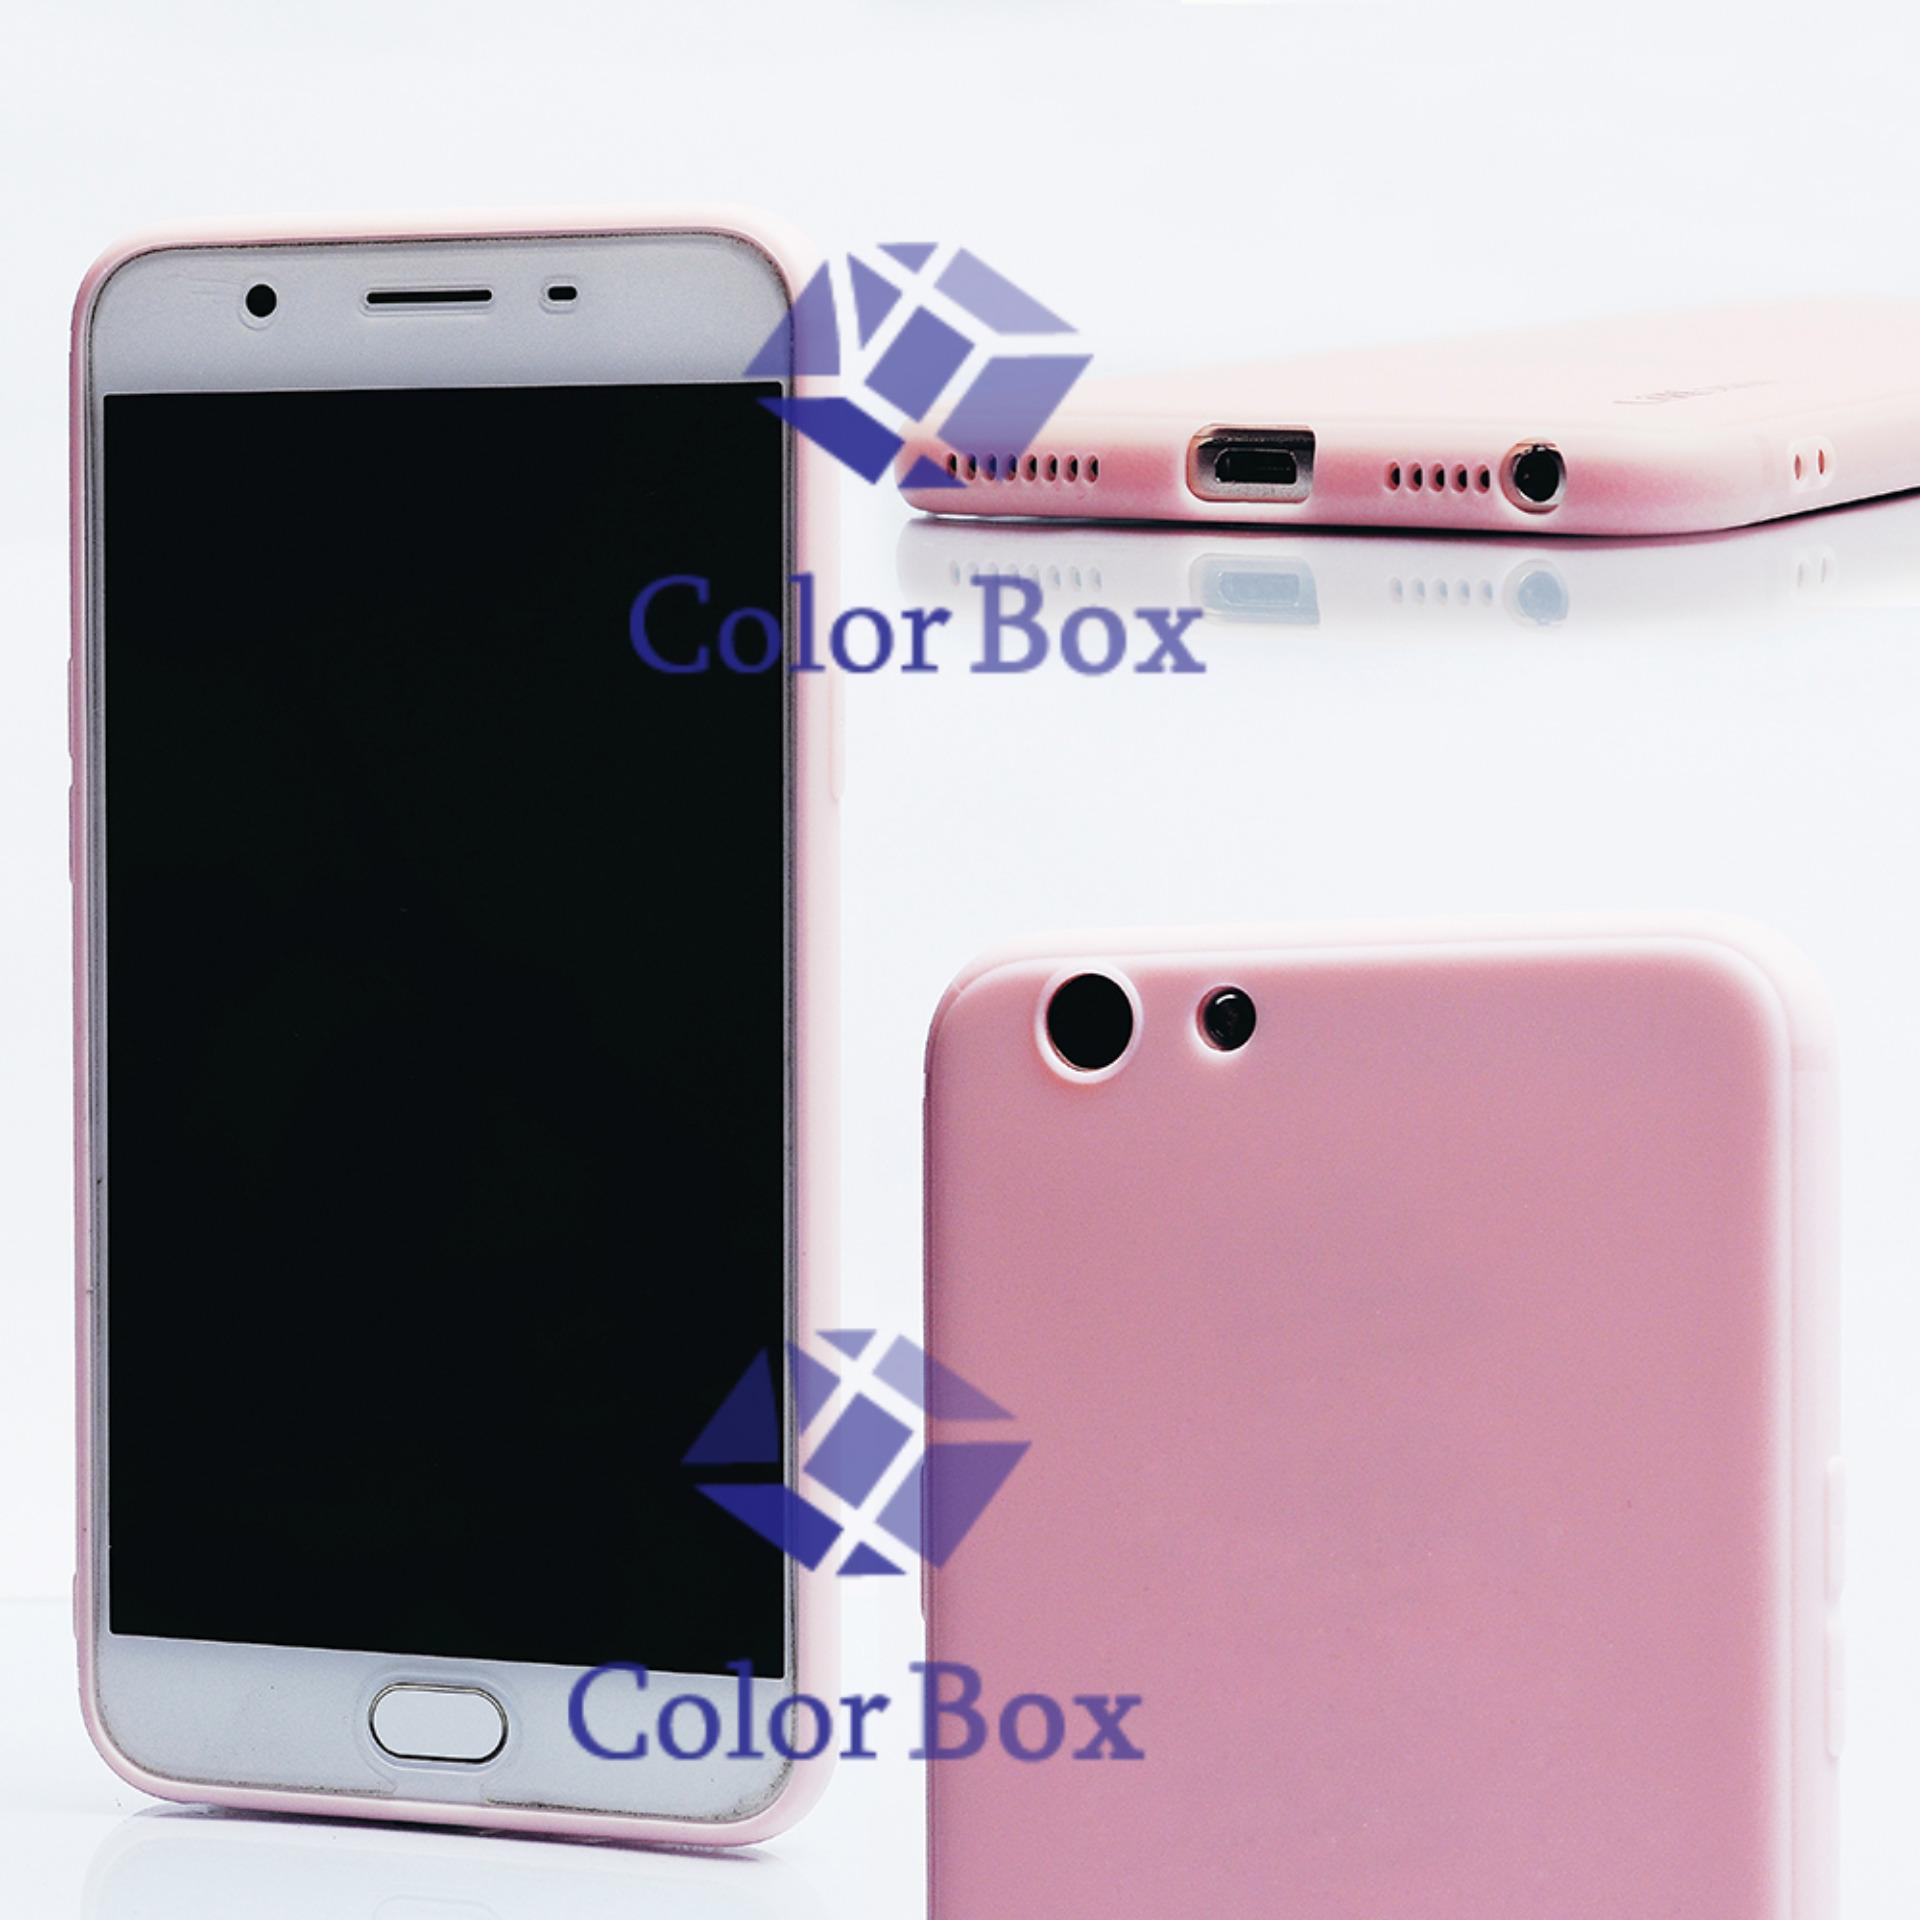 Discount Lize Soft Case Oppo F1s Selfie Expert A59 Silicone Soft Jelly Soft Shell Back Case